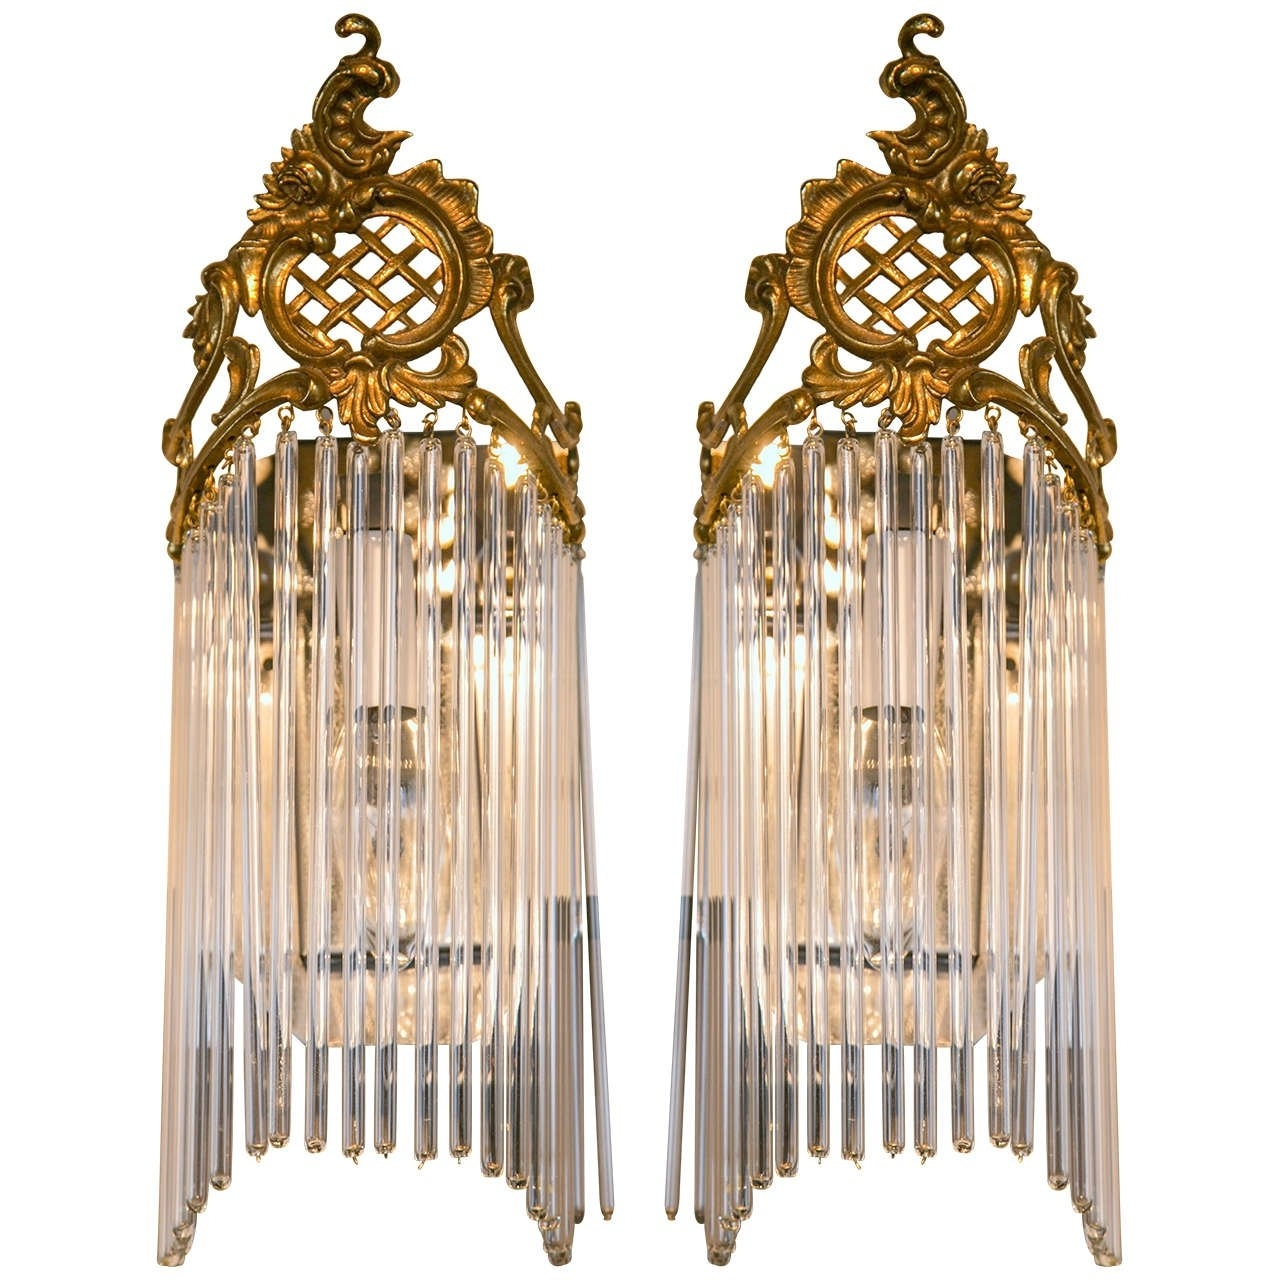 Art Deco Wall Sconces – Prix Dalle Beton Regarding Favorite Art Deco Wall Sconces (View 2 of 15)